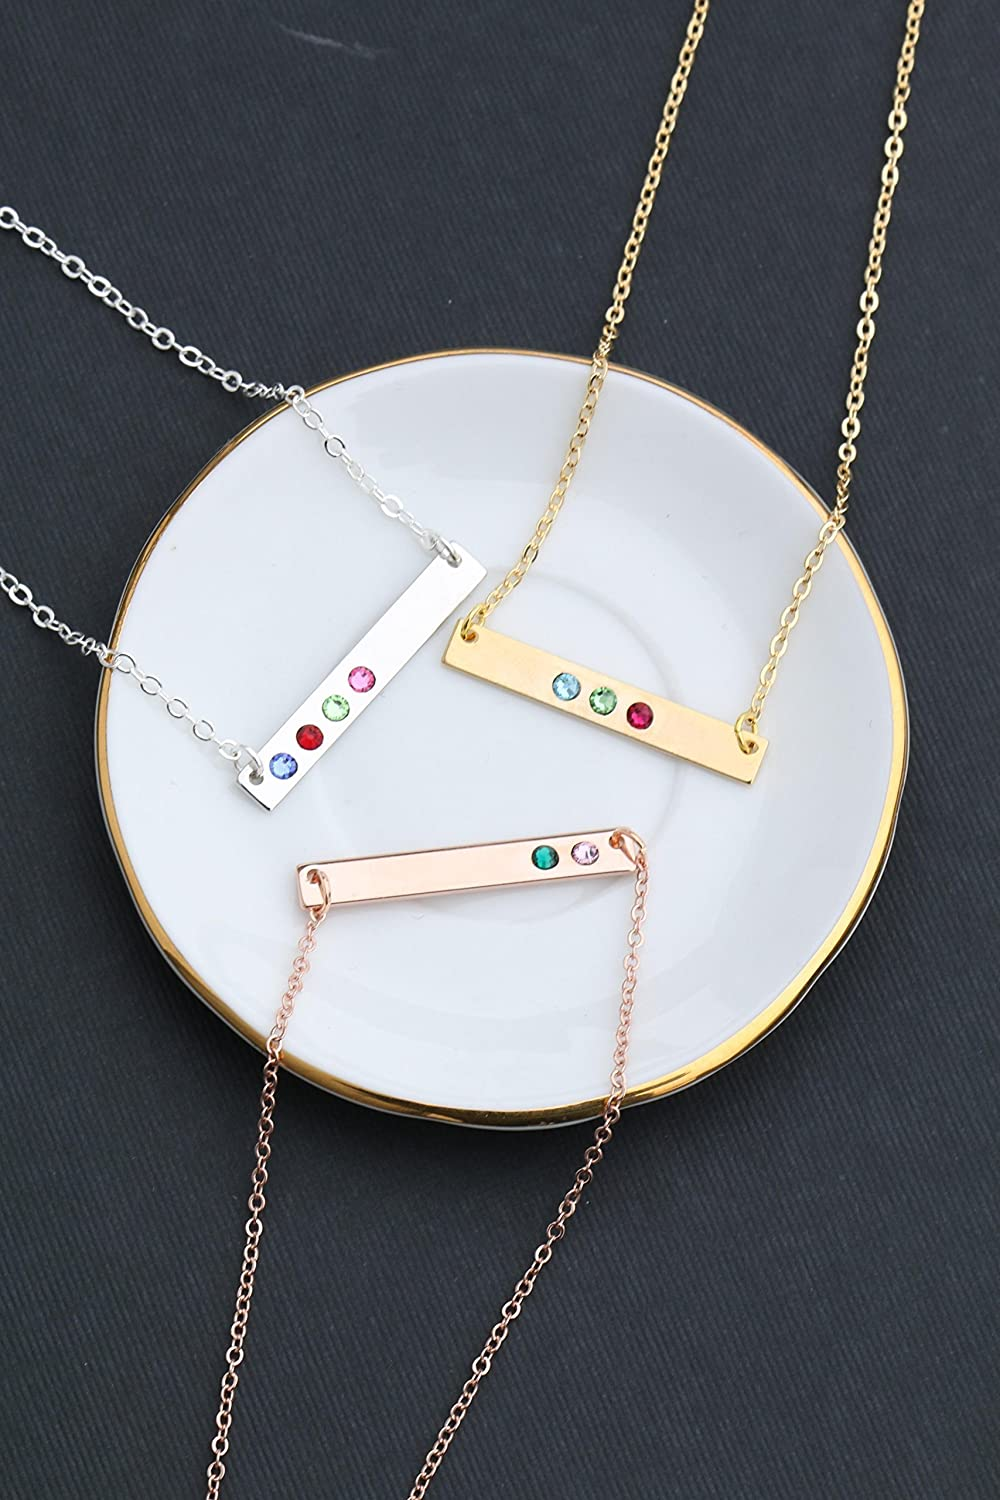 Birthstone Bar Necklace - Choose Crystal Colors, Chain Length, Silver Rose Gold Options - Christmas Mom Gift - DII DBB_20 81TDjbSNn1L